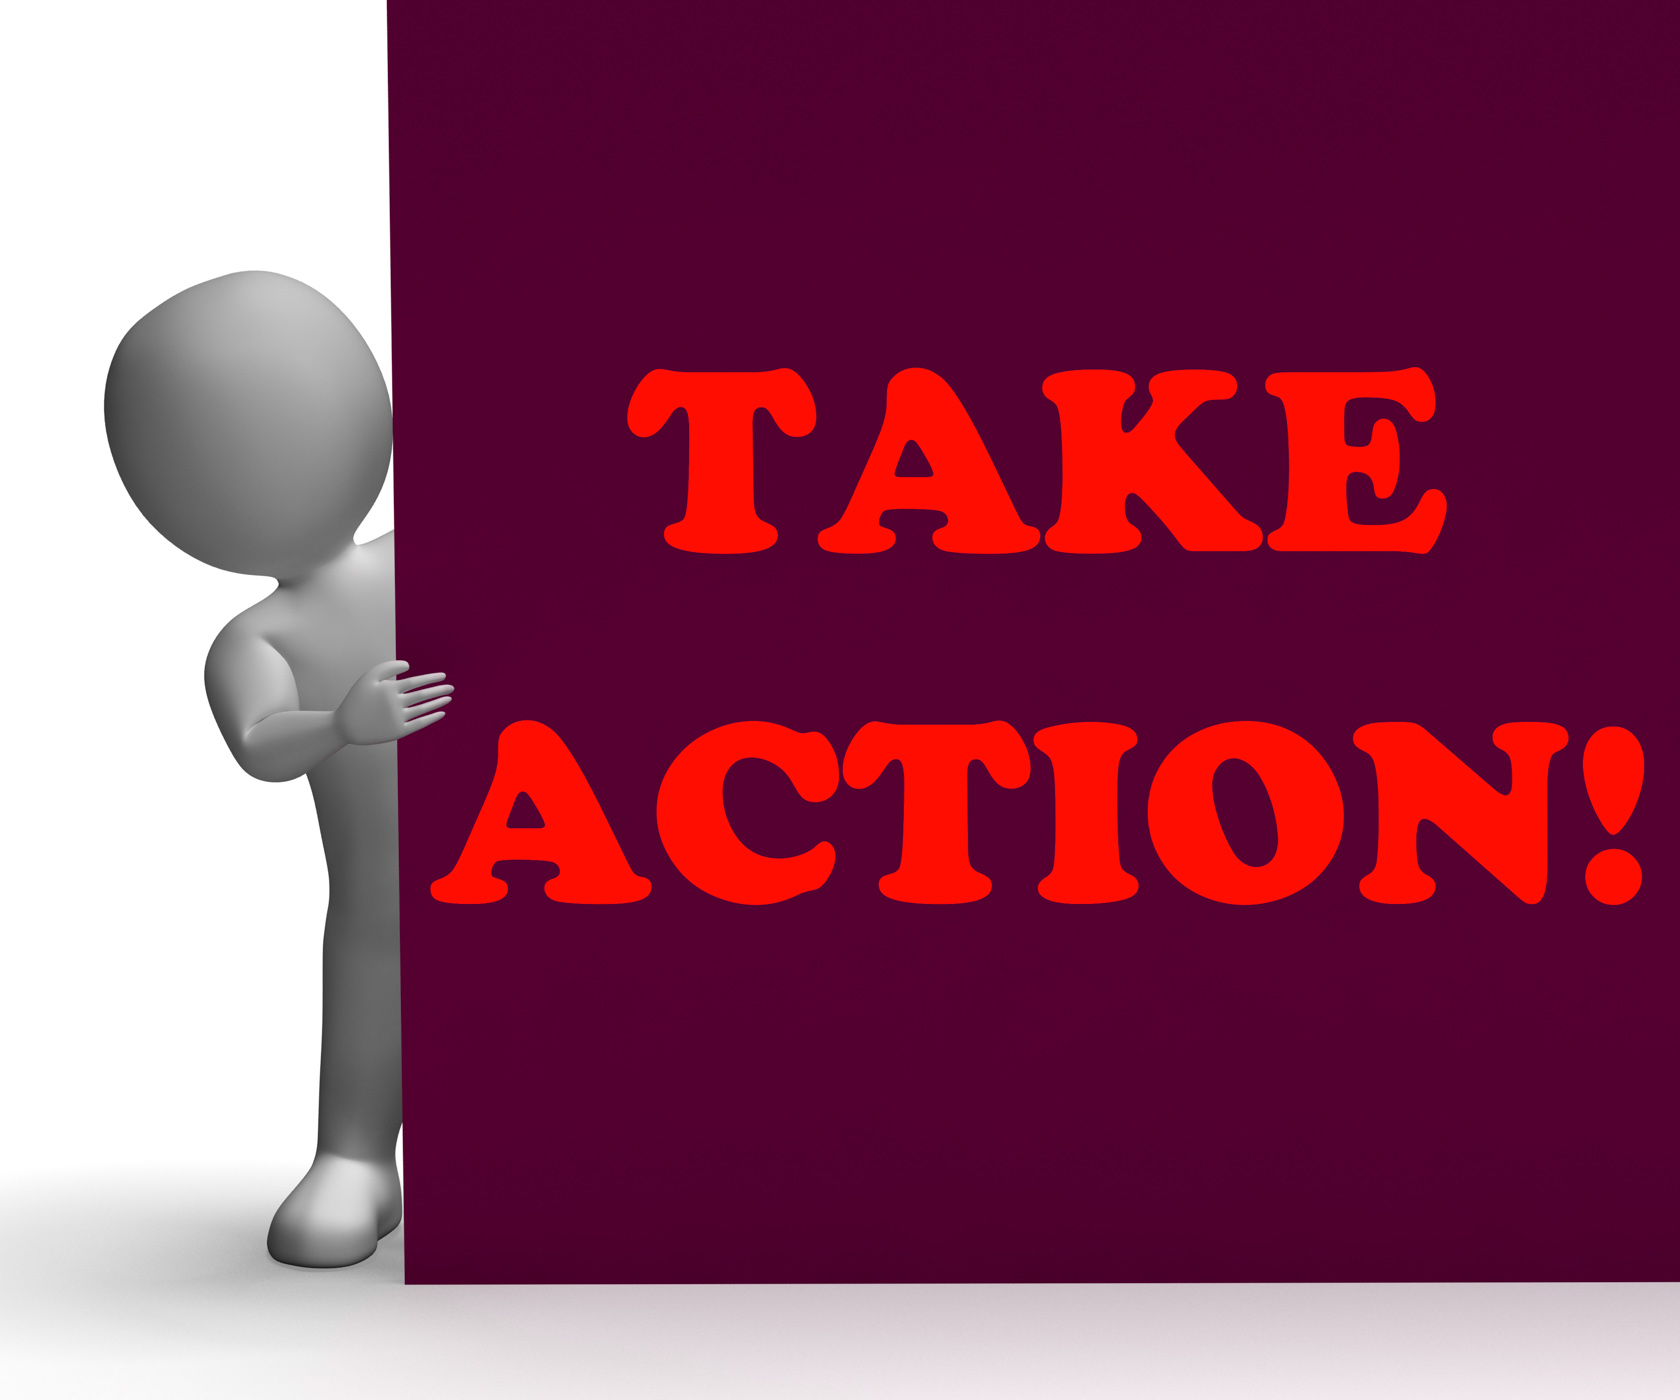 Take action sign shows inspirational encouragement photo